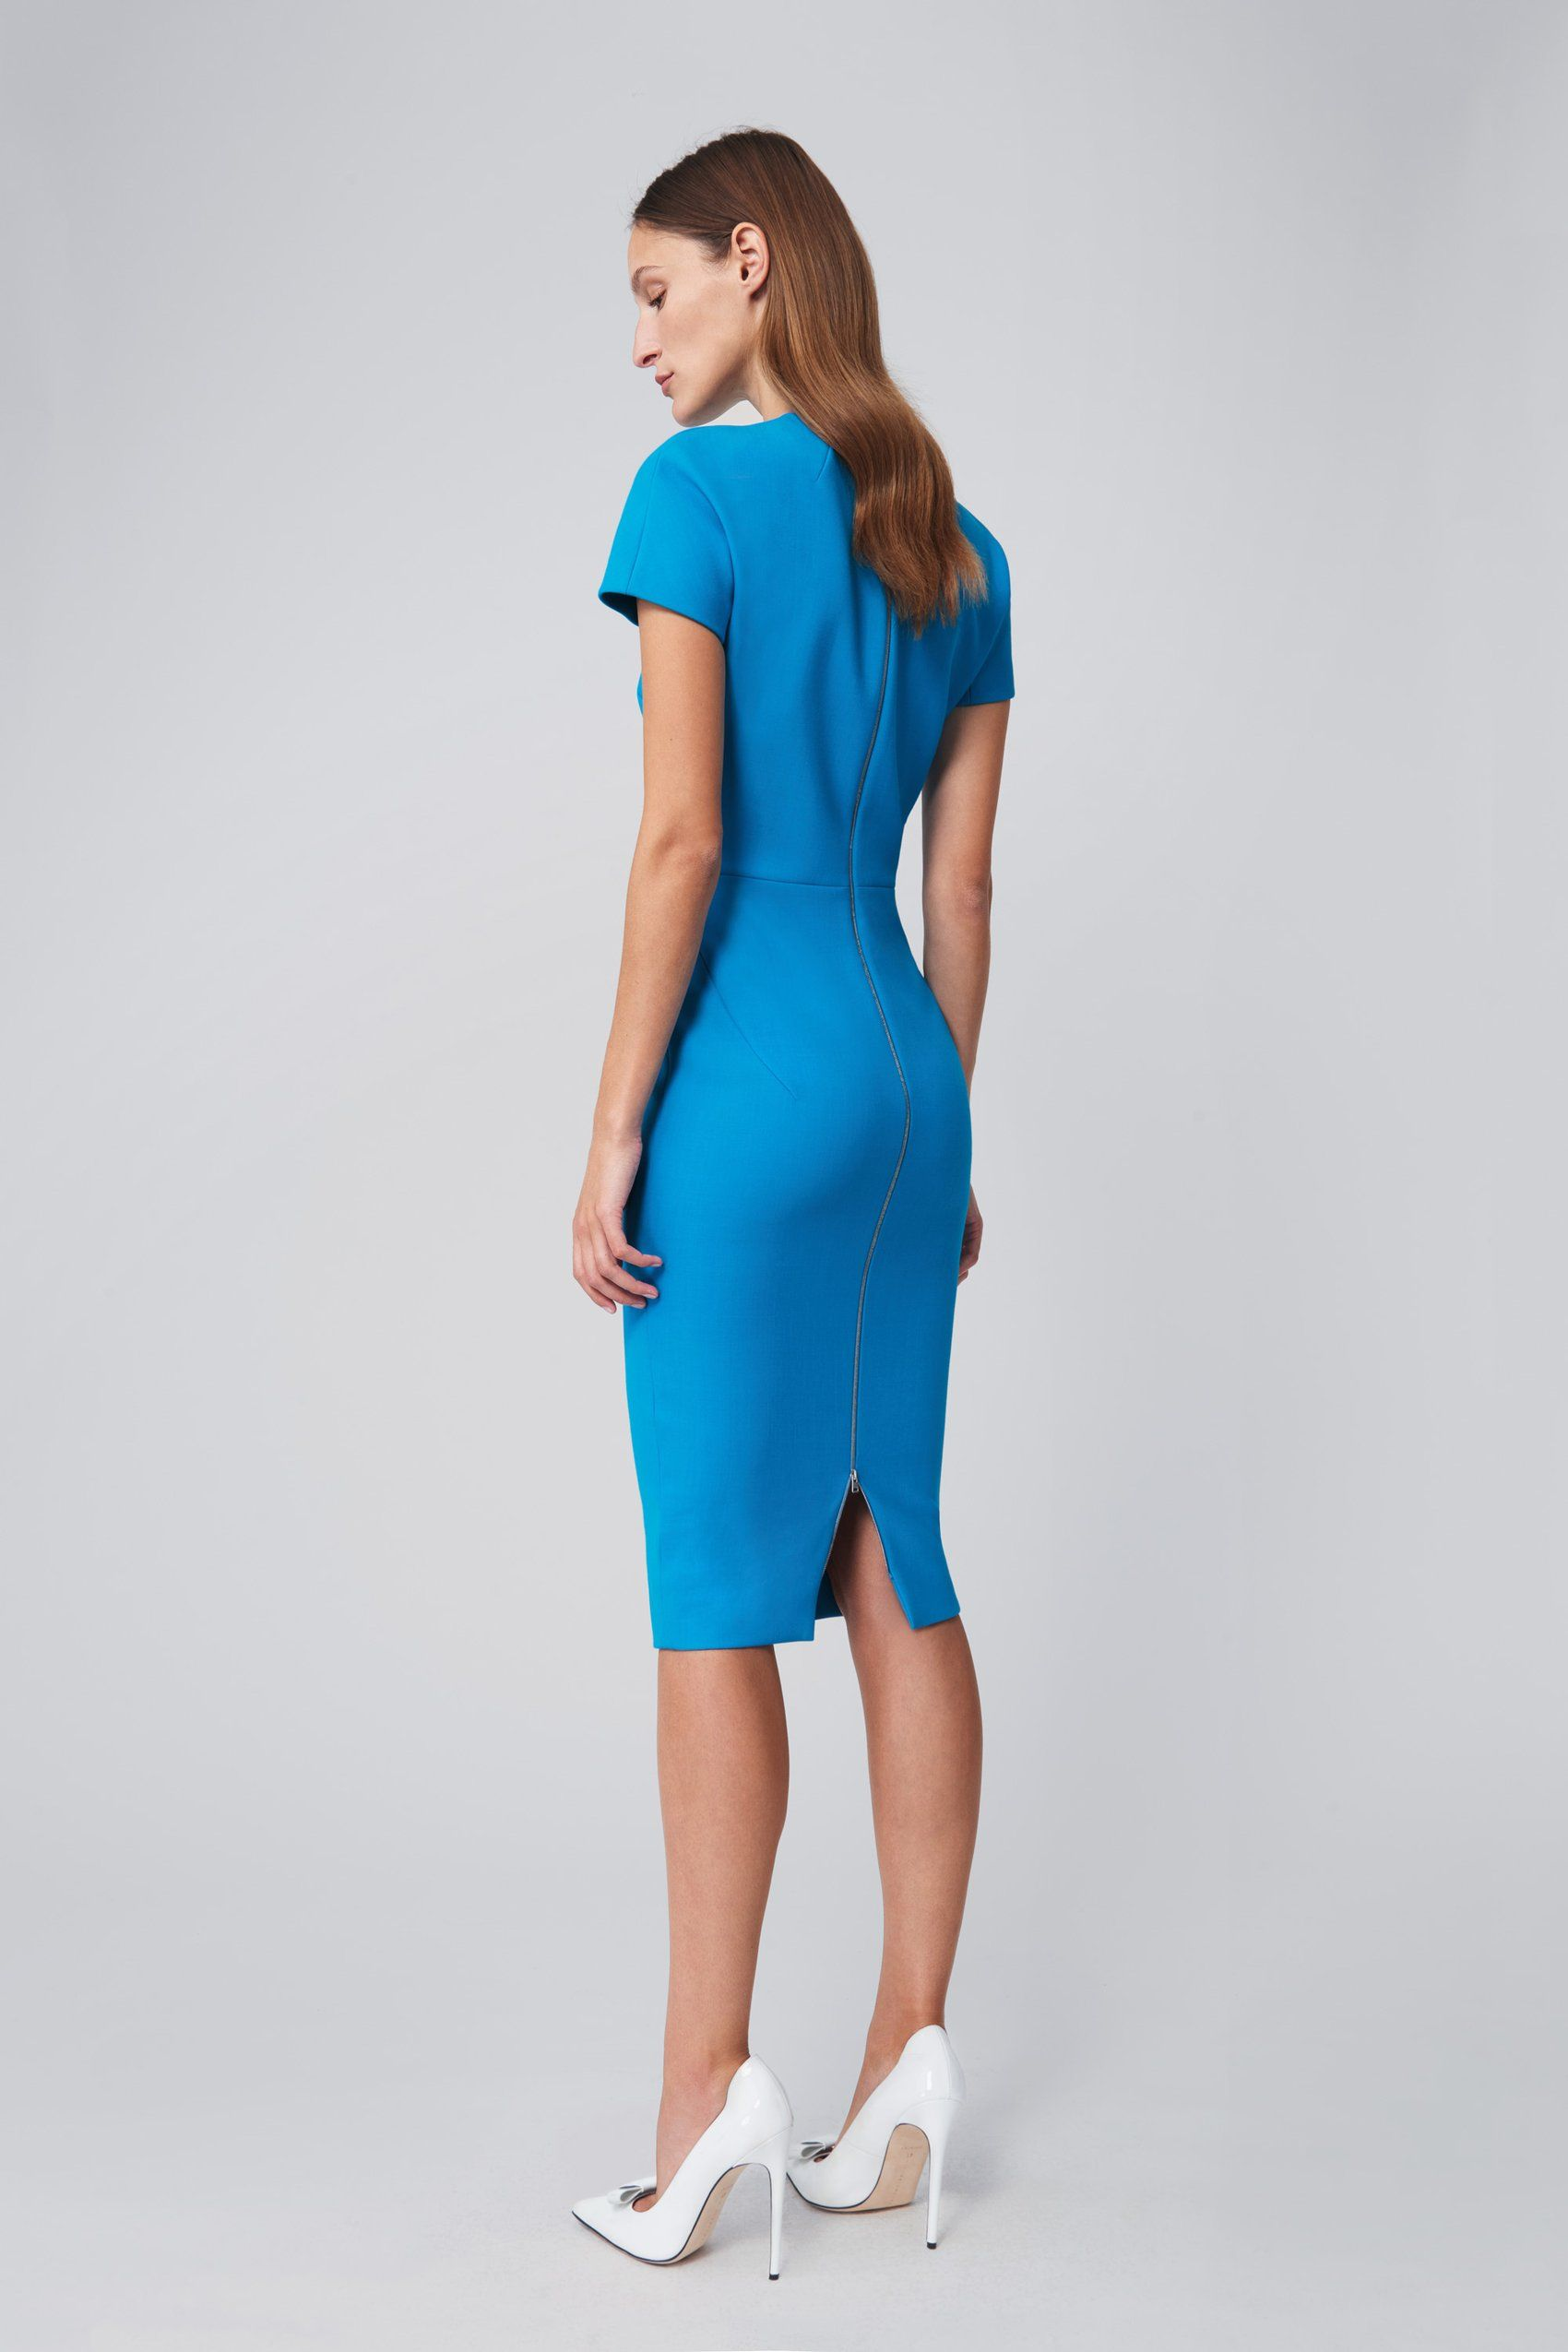 T Shirt Fitted Dress In Turquoise Victoria Beckham Fitted Dress Dresses Dresses For Work [ 2550 x 1700 Pixel ]